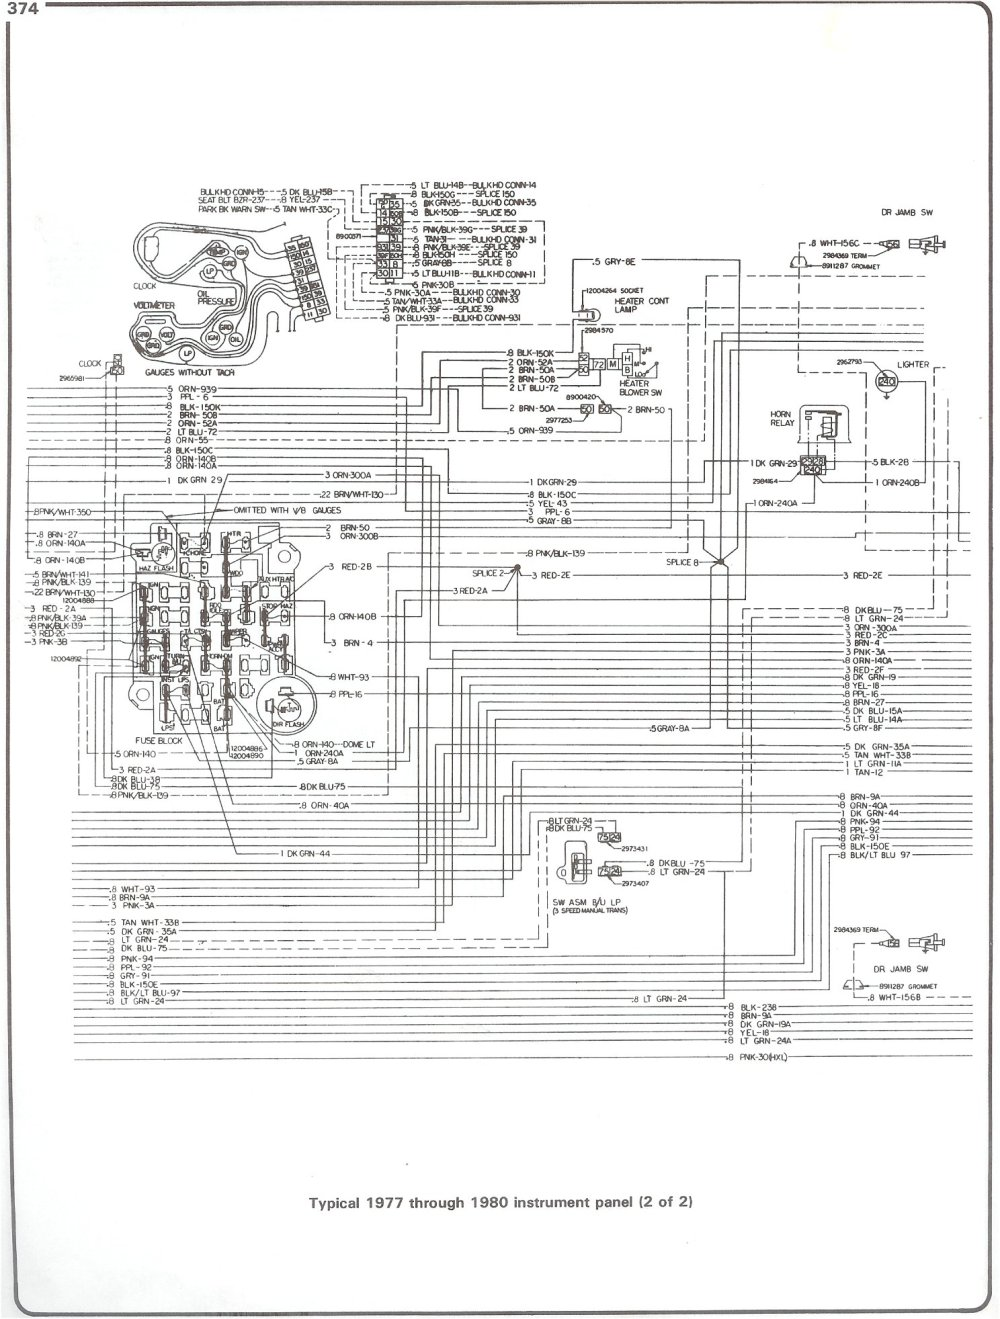 medium resolution of 1978 chevy truck fuse diagram wiring diagram mega 1978 chevy truck fuse diagram